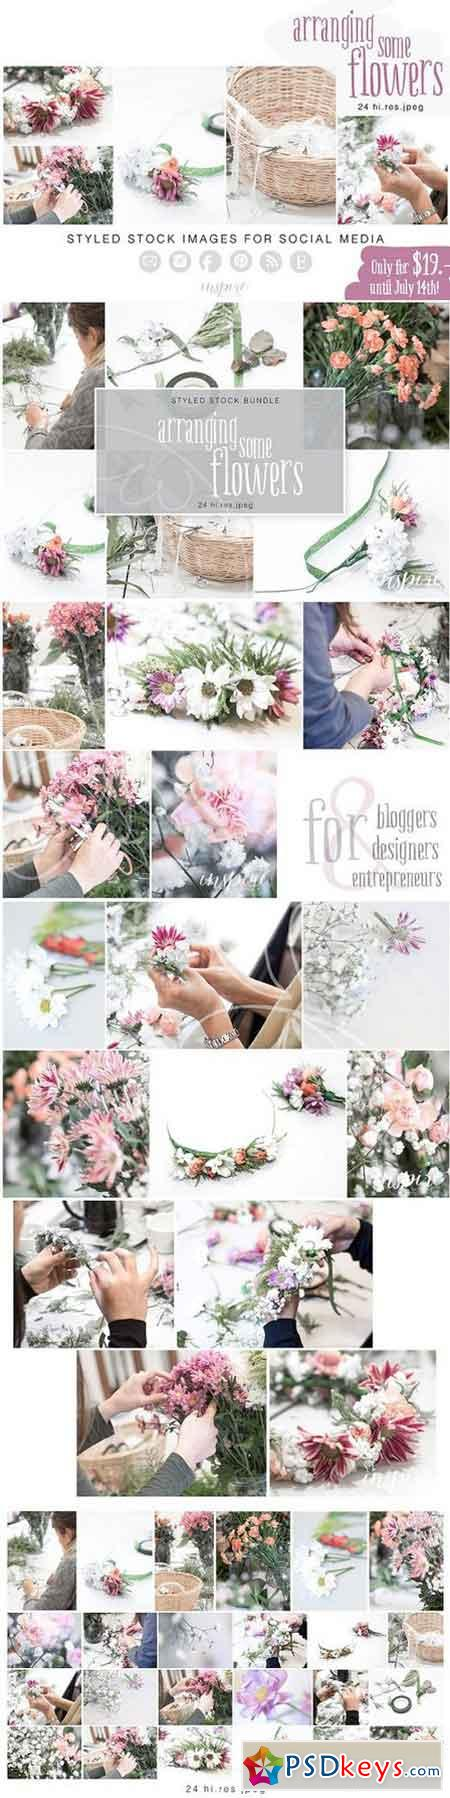 Arranging Flowers Hi Res Jpeg Bundle 1664278